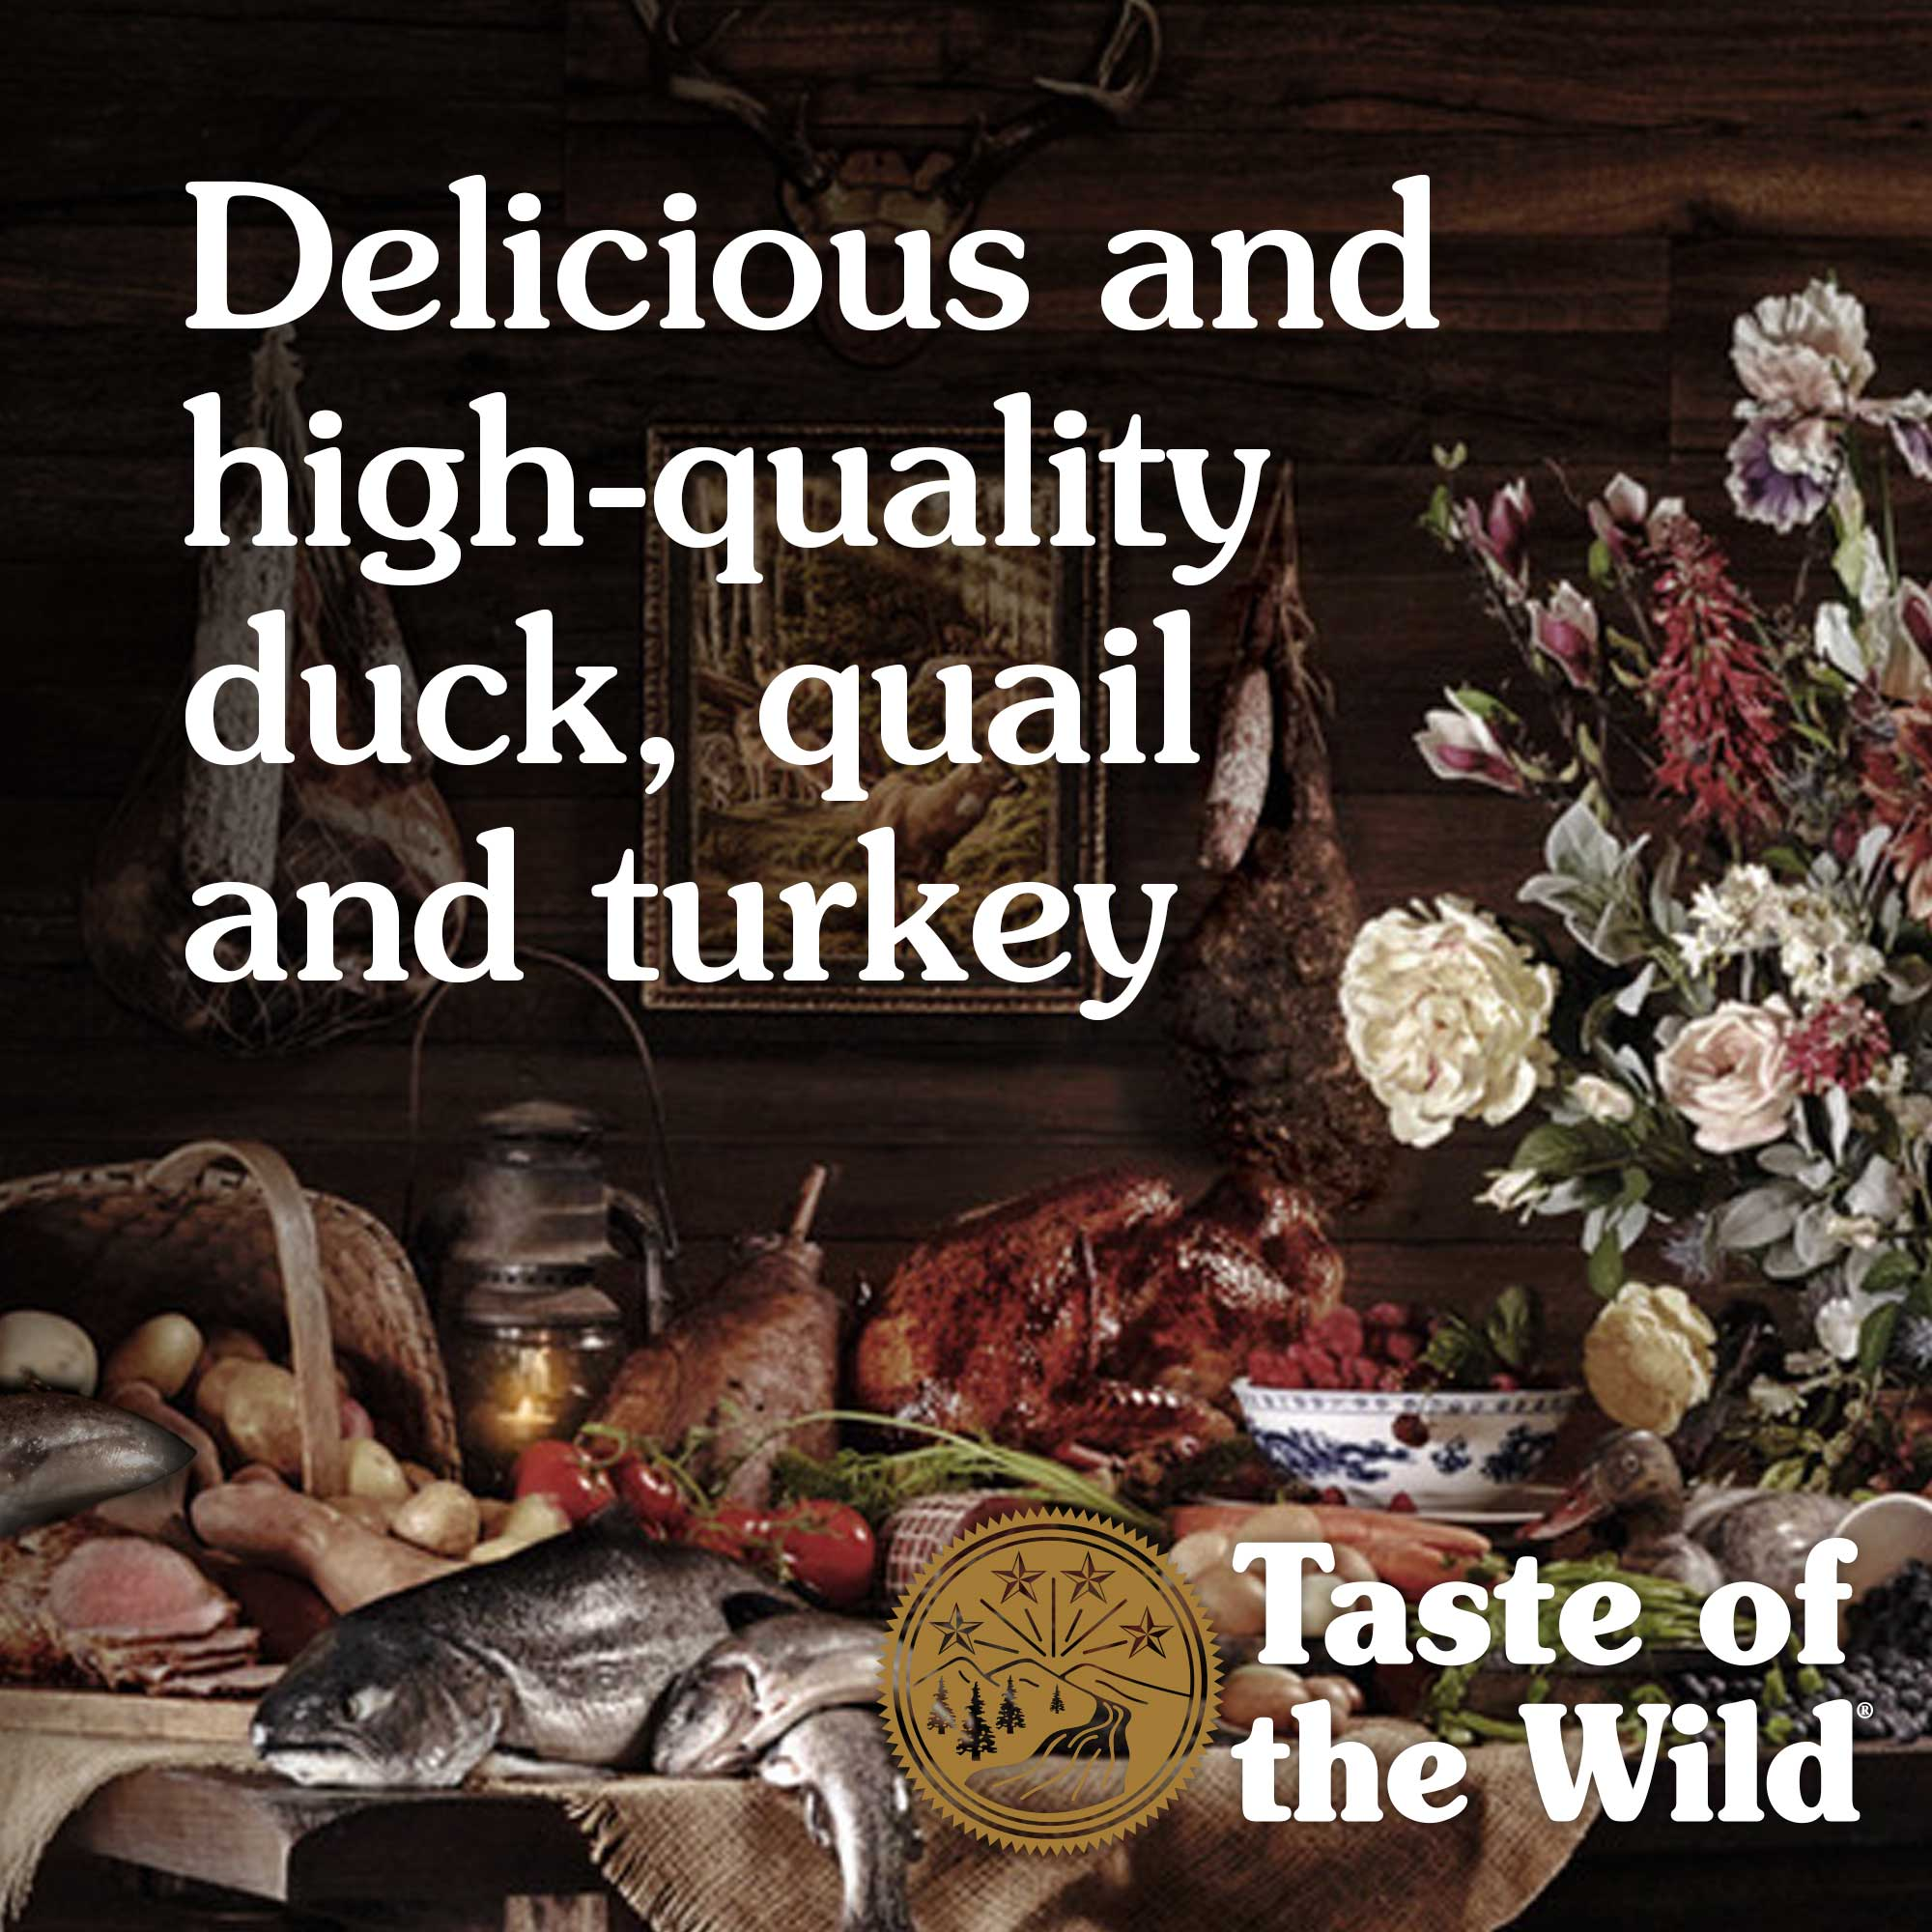 Delicious and high-quality duck, quail and turkey